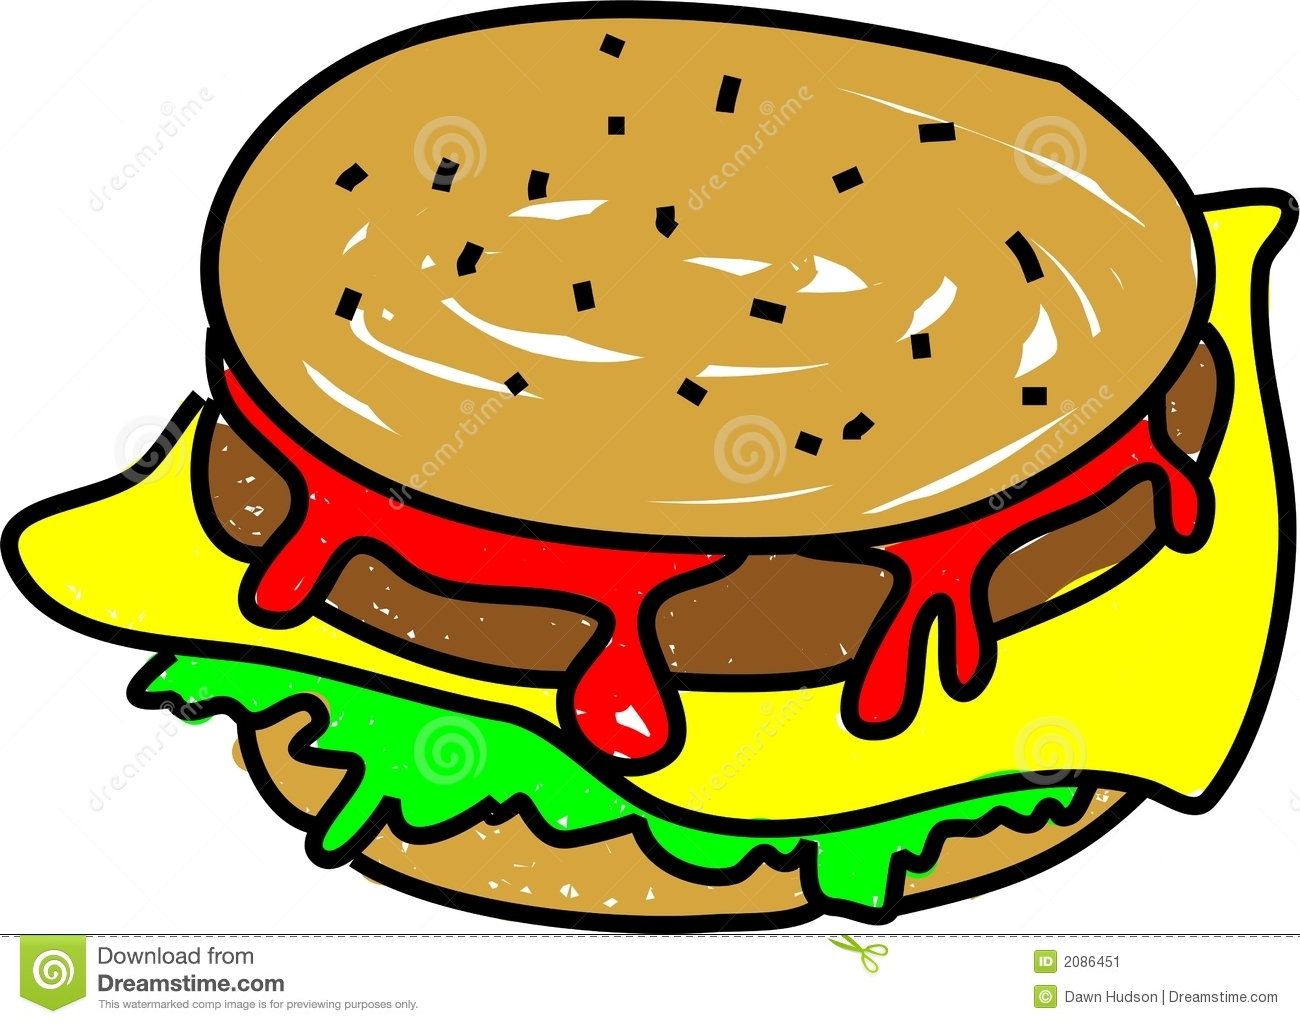 Cheeseburger Stock Vector Illustration Of Illustration